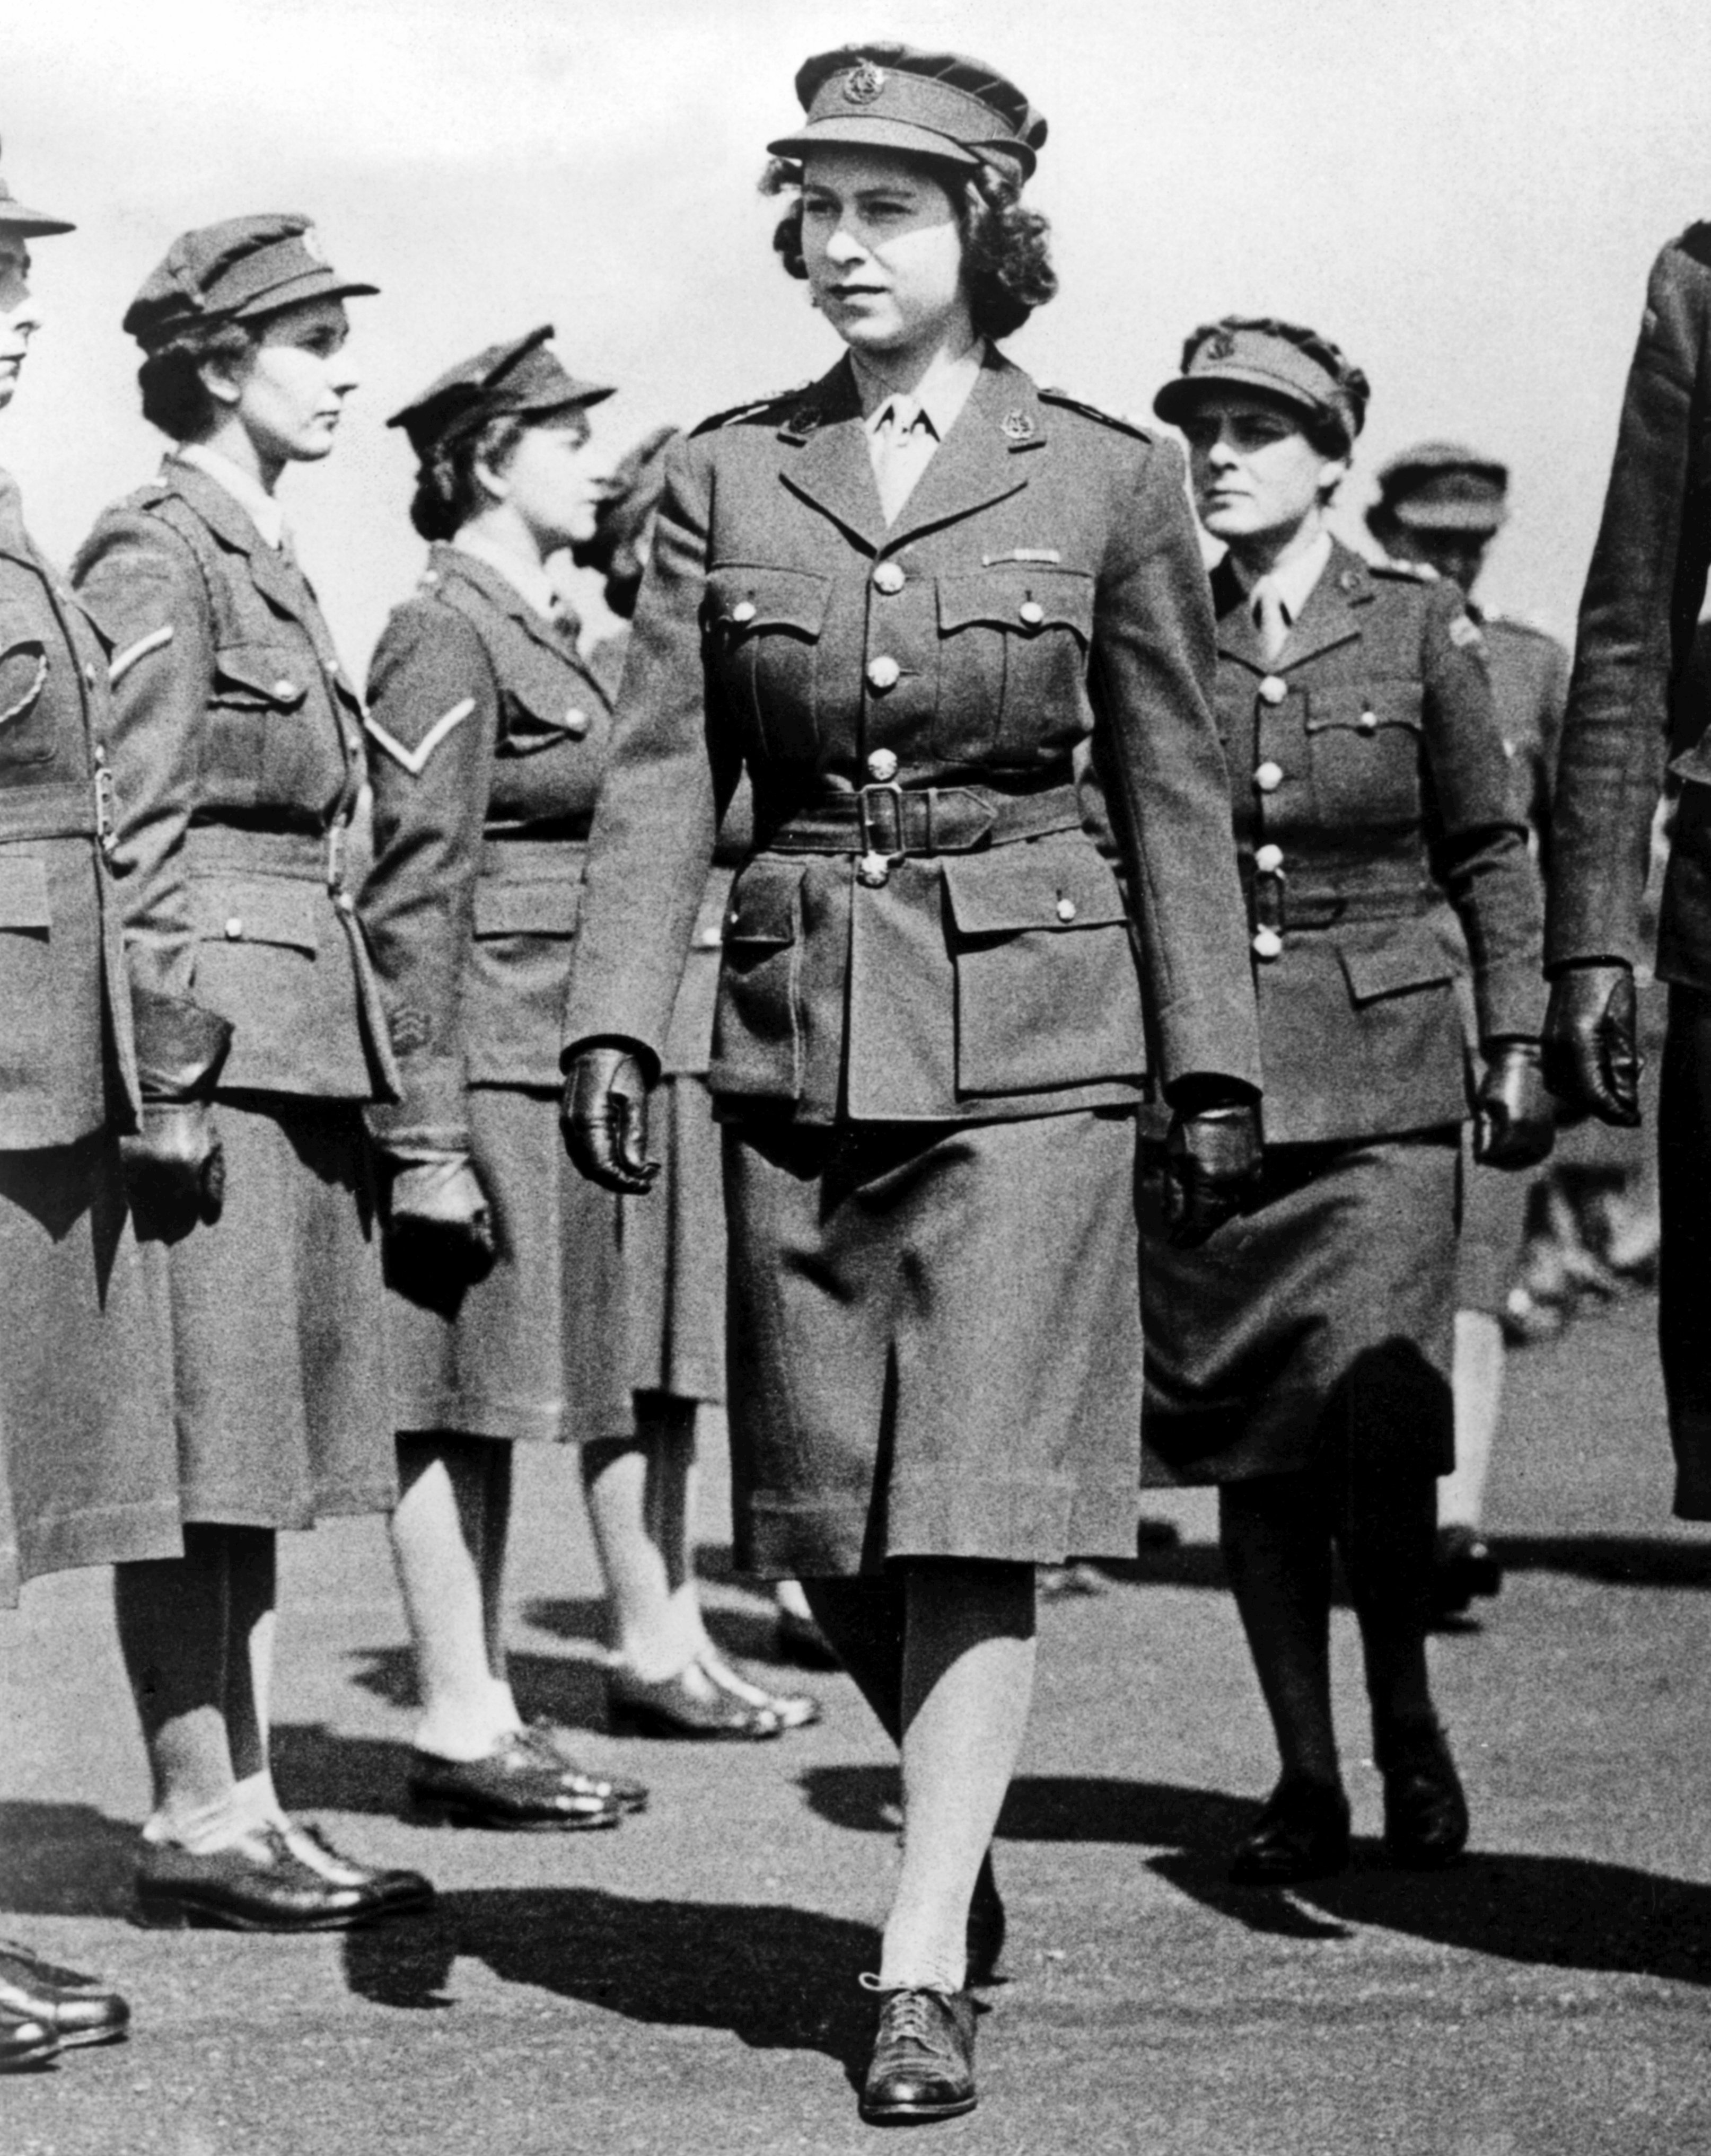 Princess Elizabeth as Junior Commander in the ATS inspecting The Motor Transport Training Centre at Camberley, Surrey during the Second World War. Circa May 1945. | Source: Getty Images